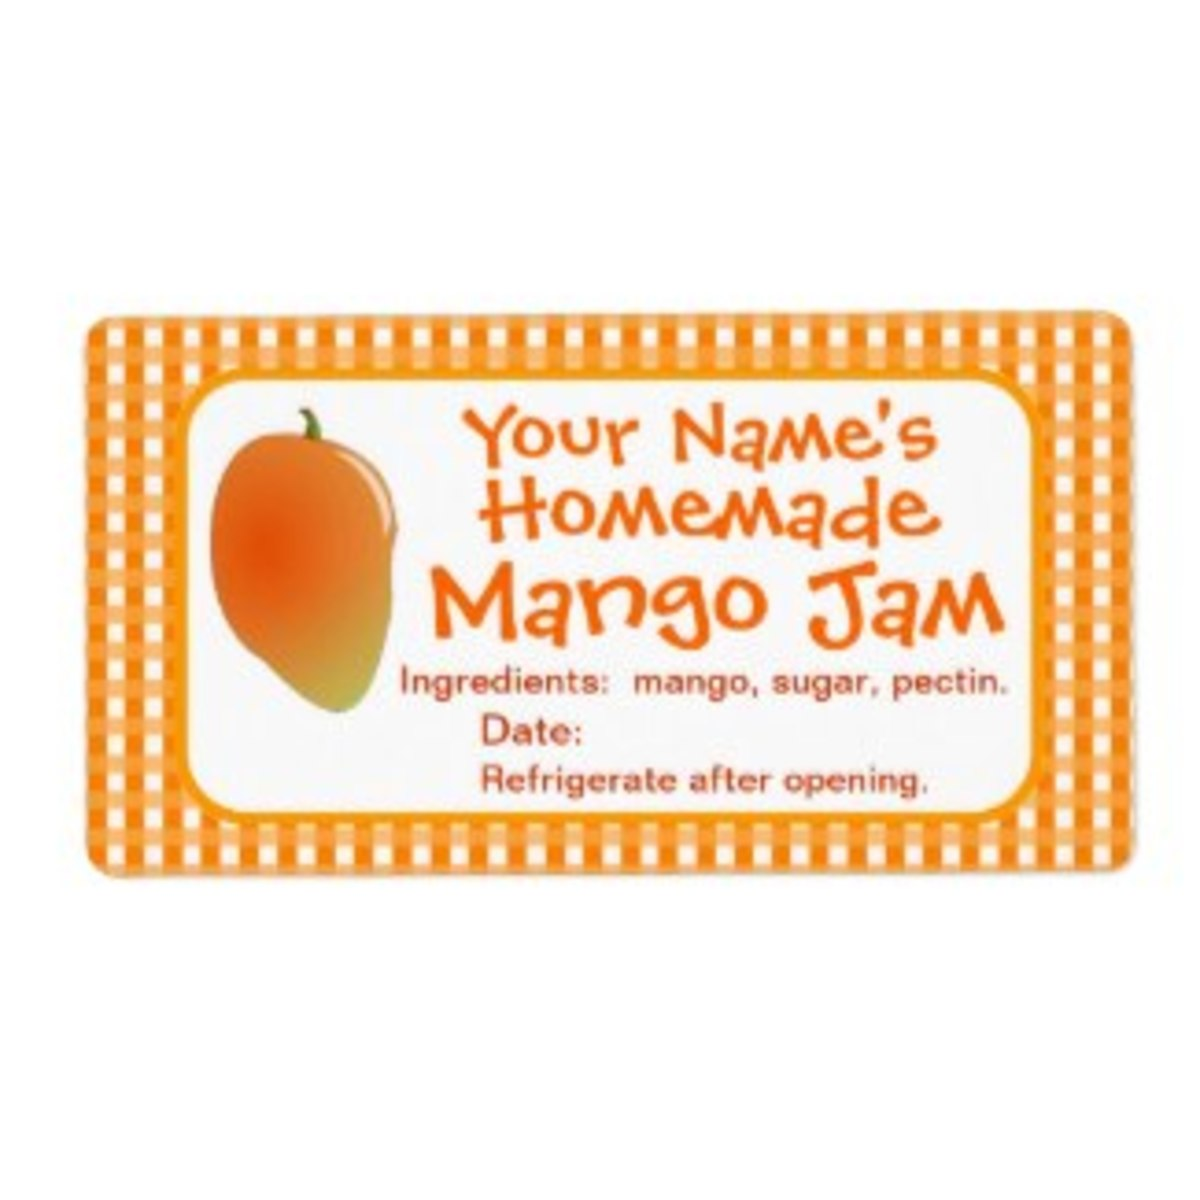 chutney label templates - how to make mango jam at home hubpages